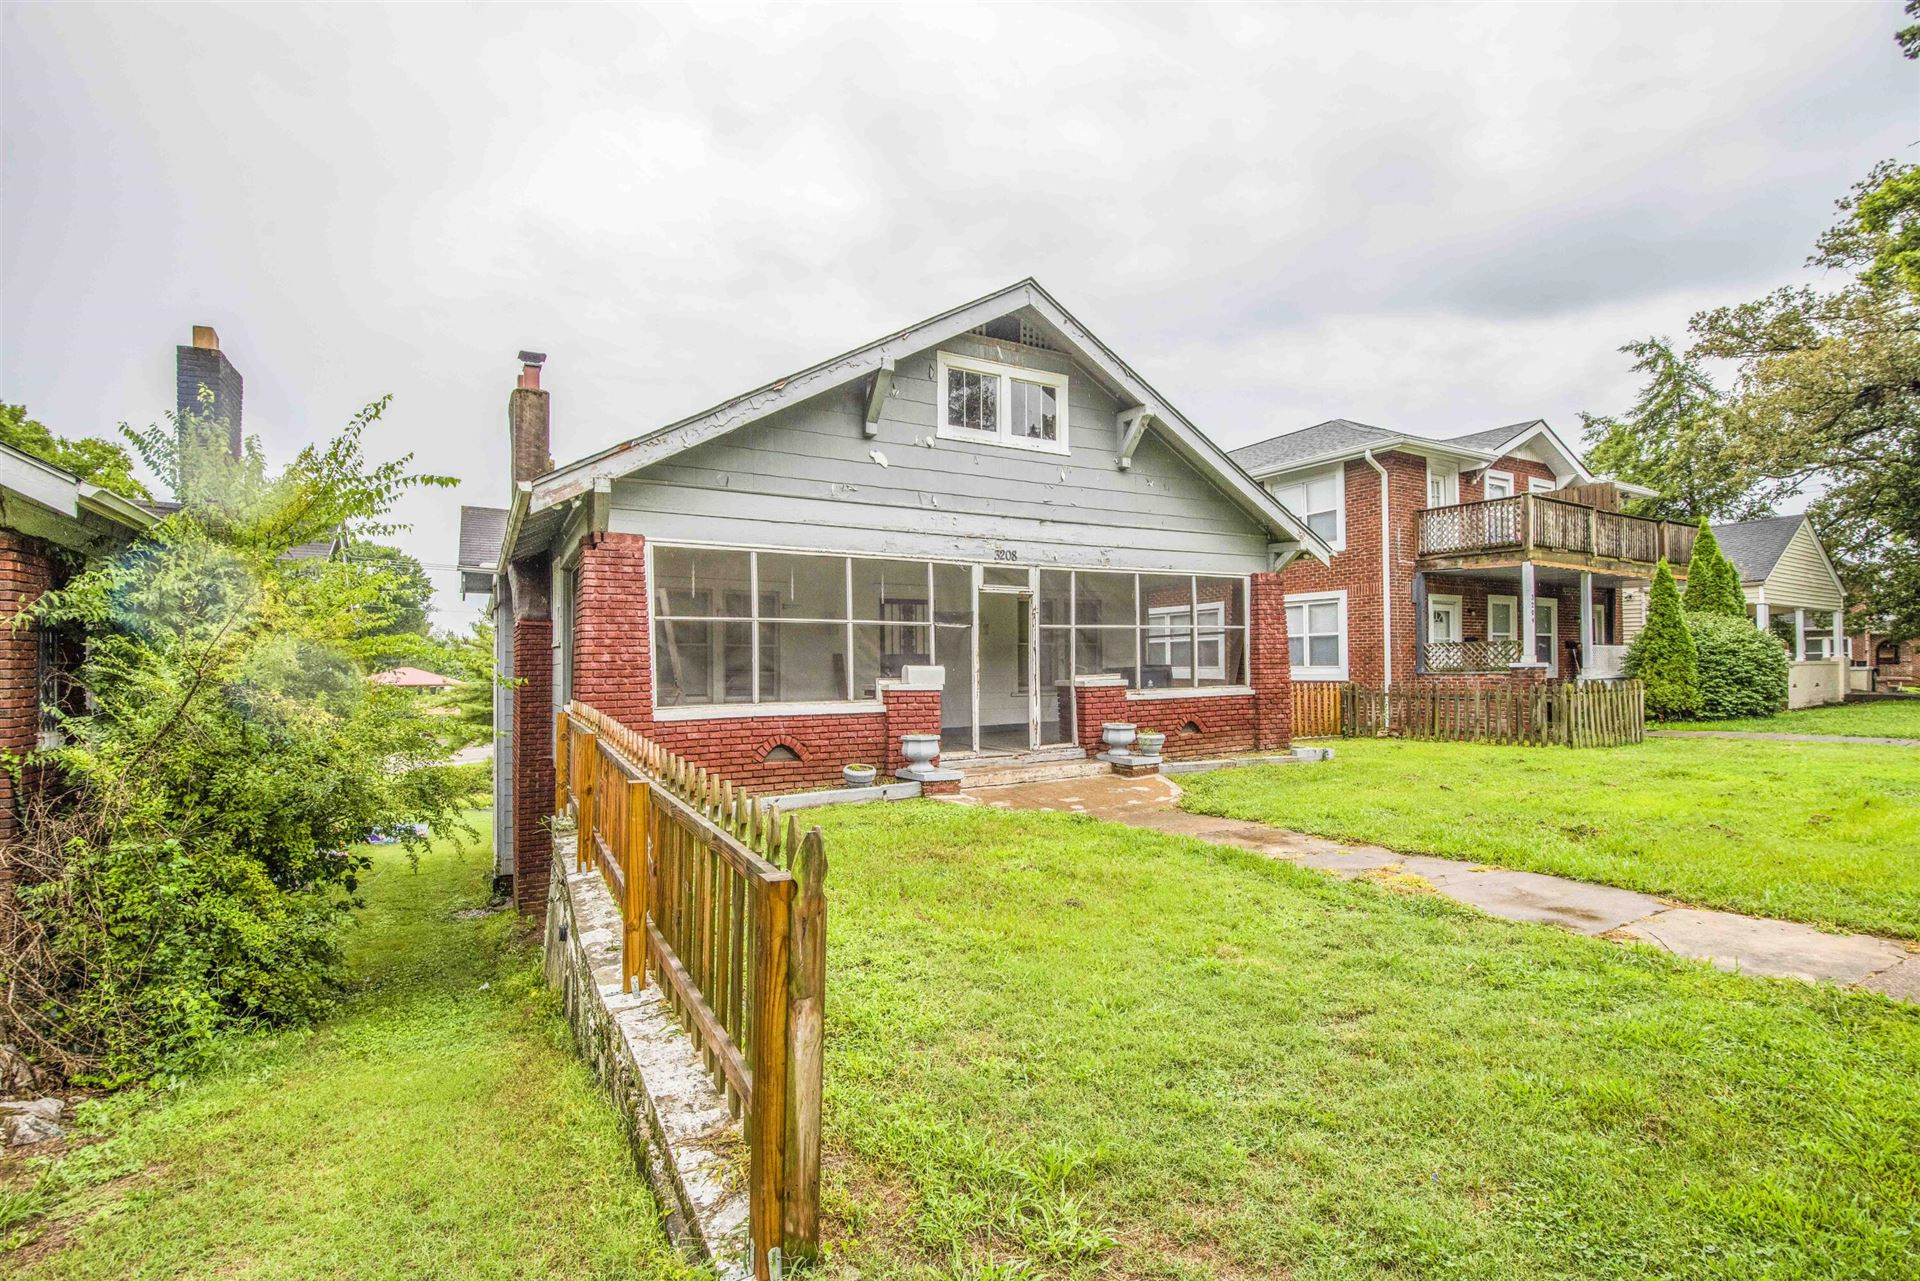 Photo of 3208 E 5th Avenue Ave, Knoxville, TN 37914 (MLS # 1166110)